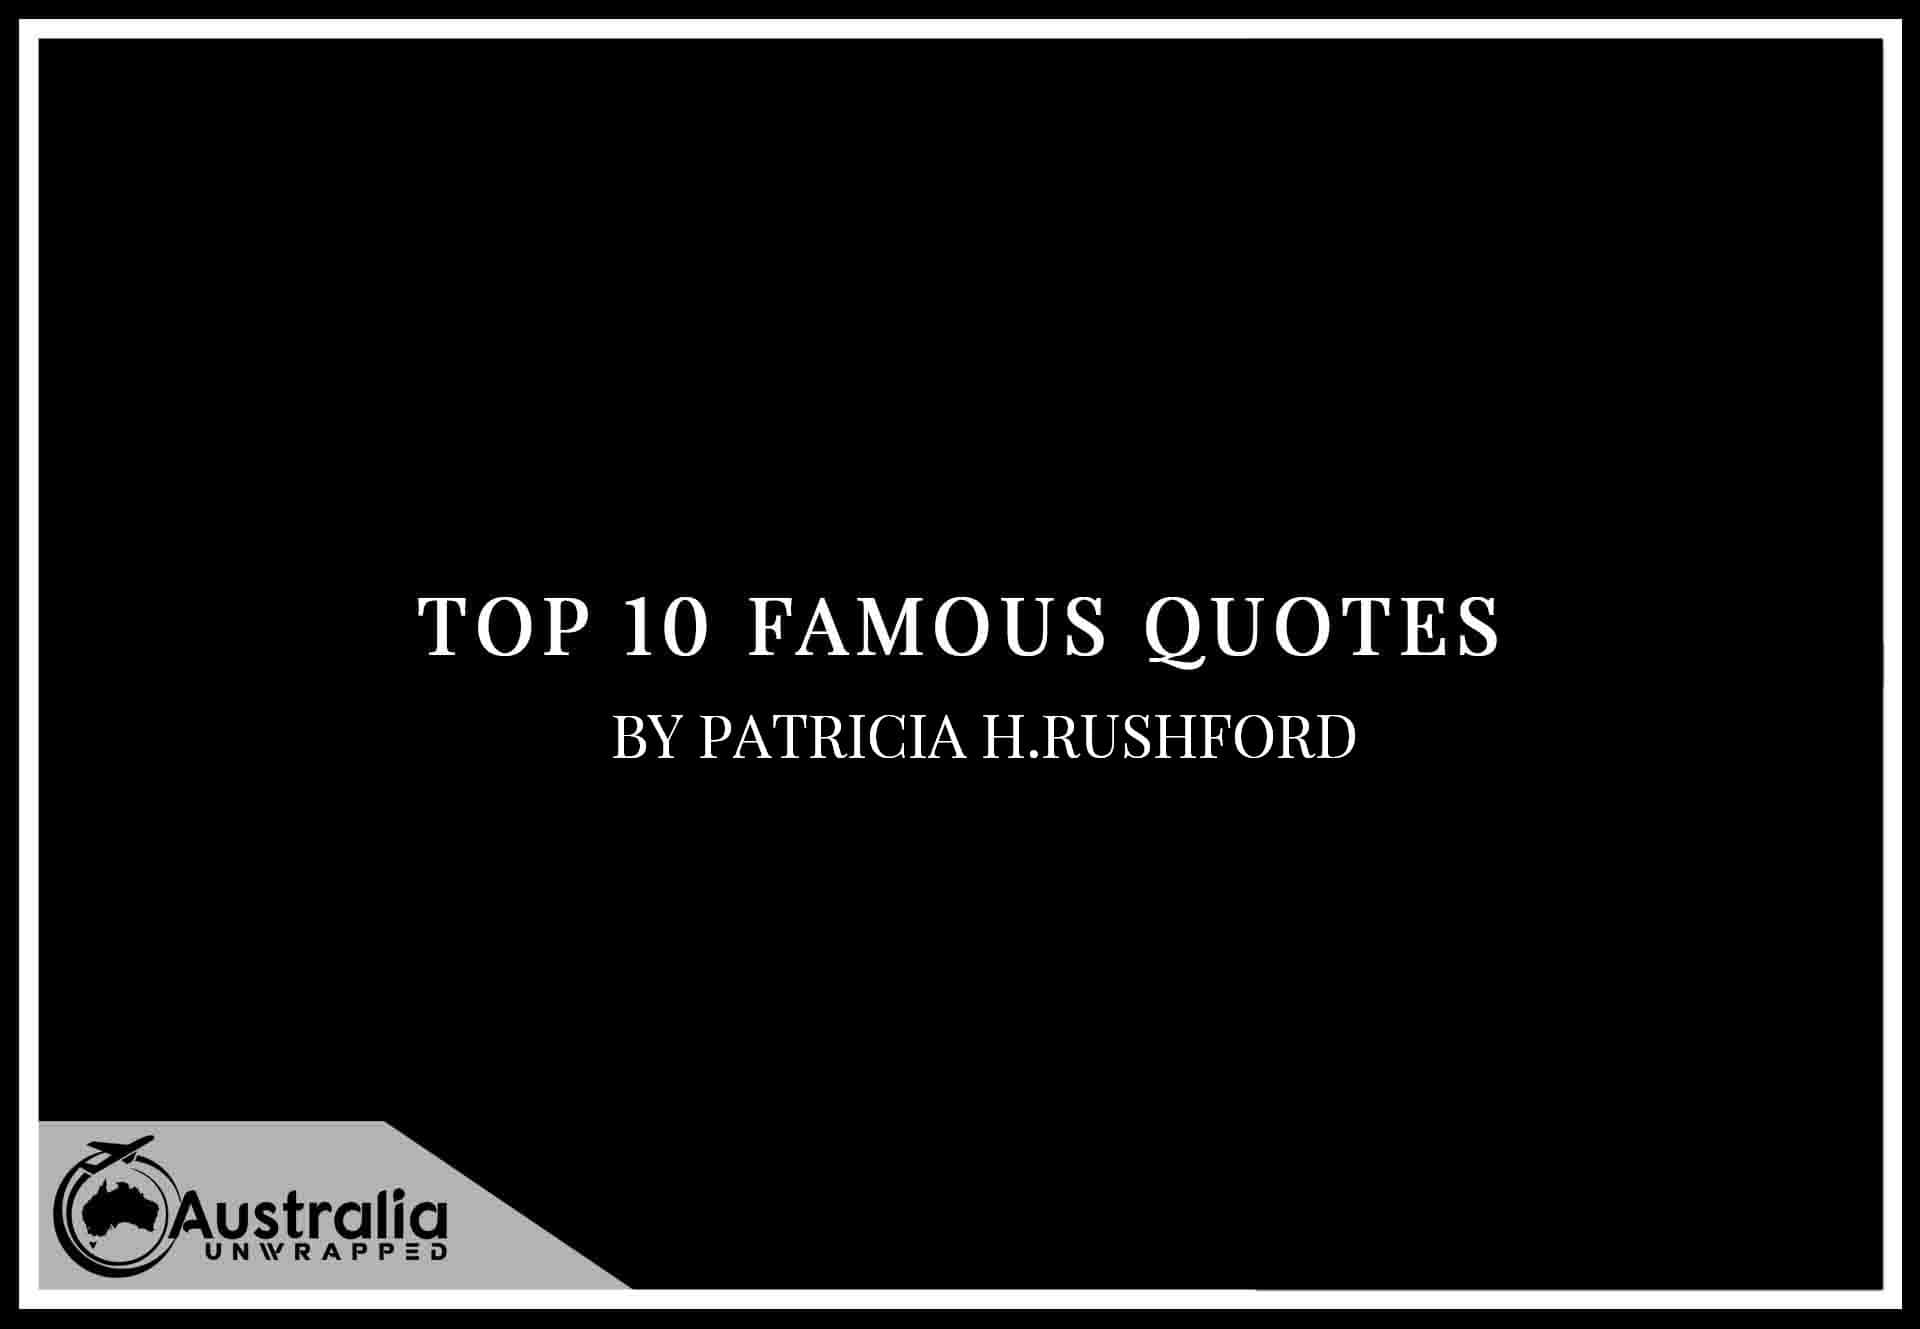 Top 10 Famous Quotes by Author Patricia H. Rushford